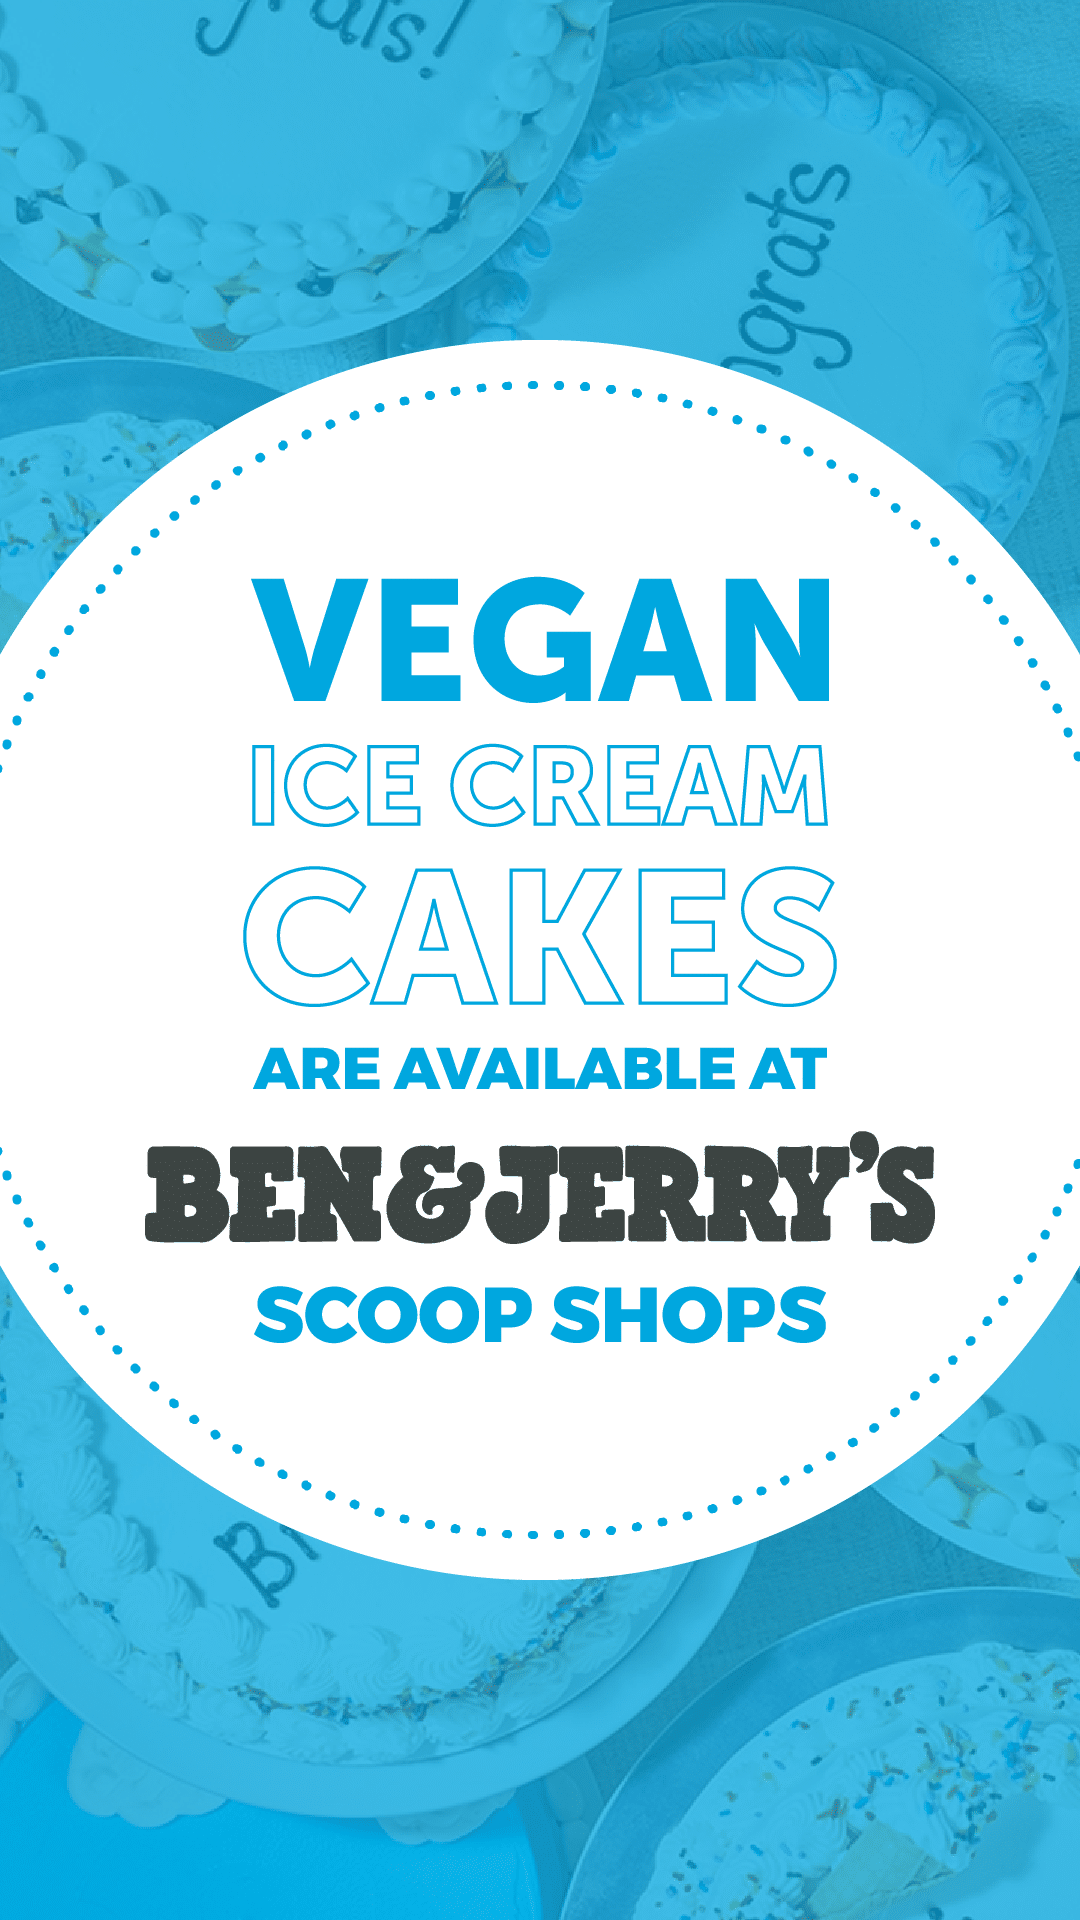 Vegan Ice Cream Cakes Are Available at Ben & Jerry's Scoop Shops